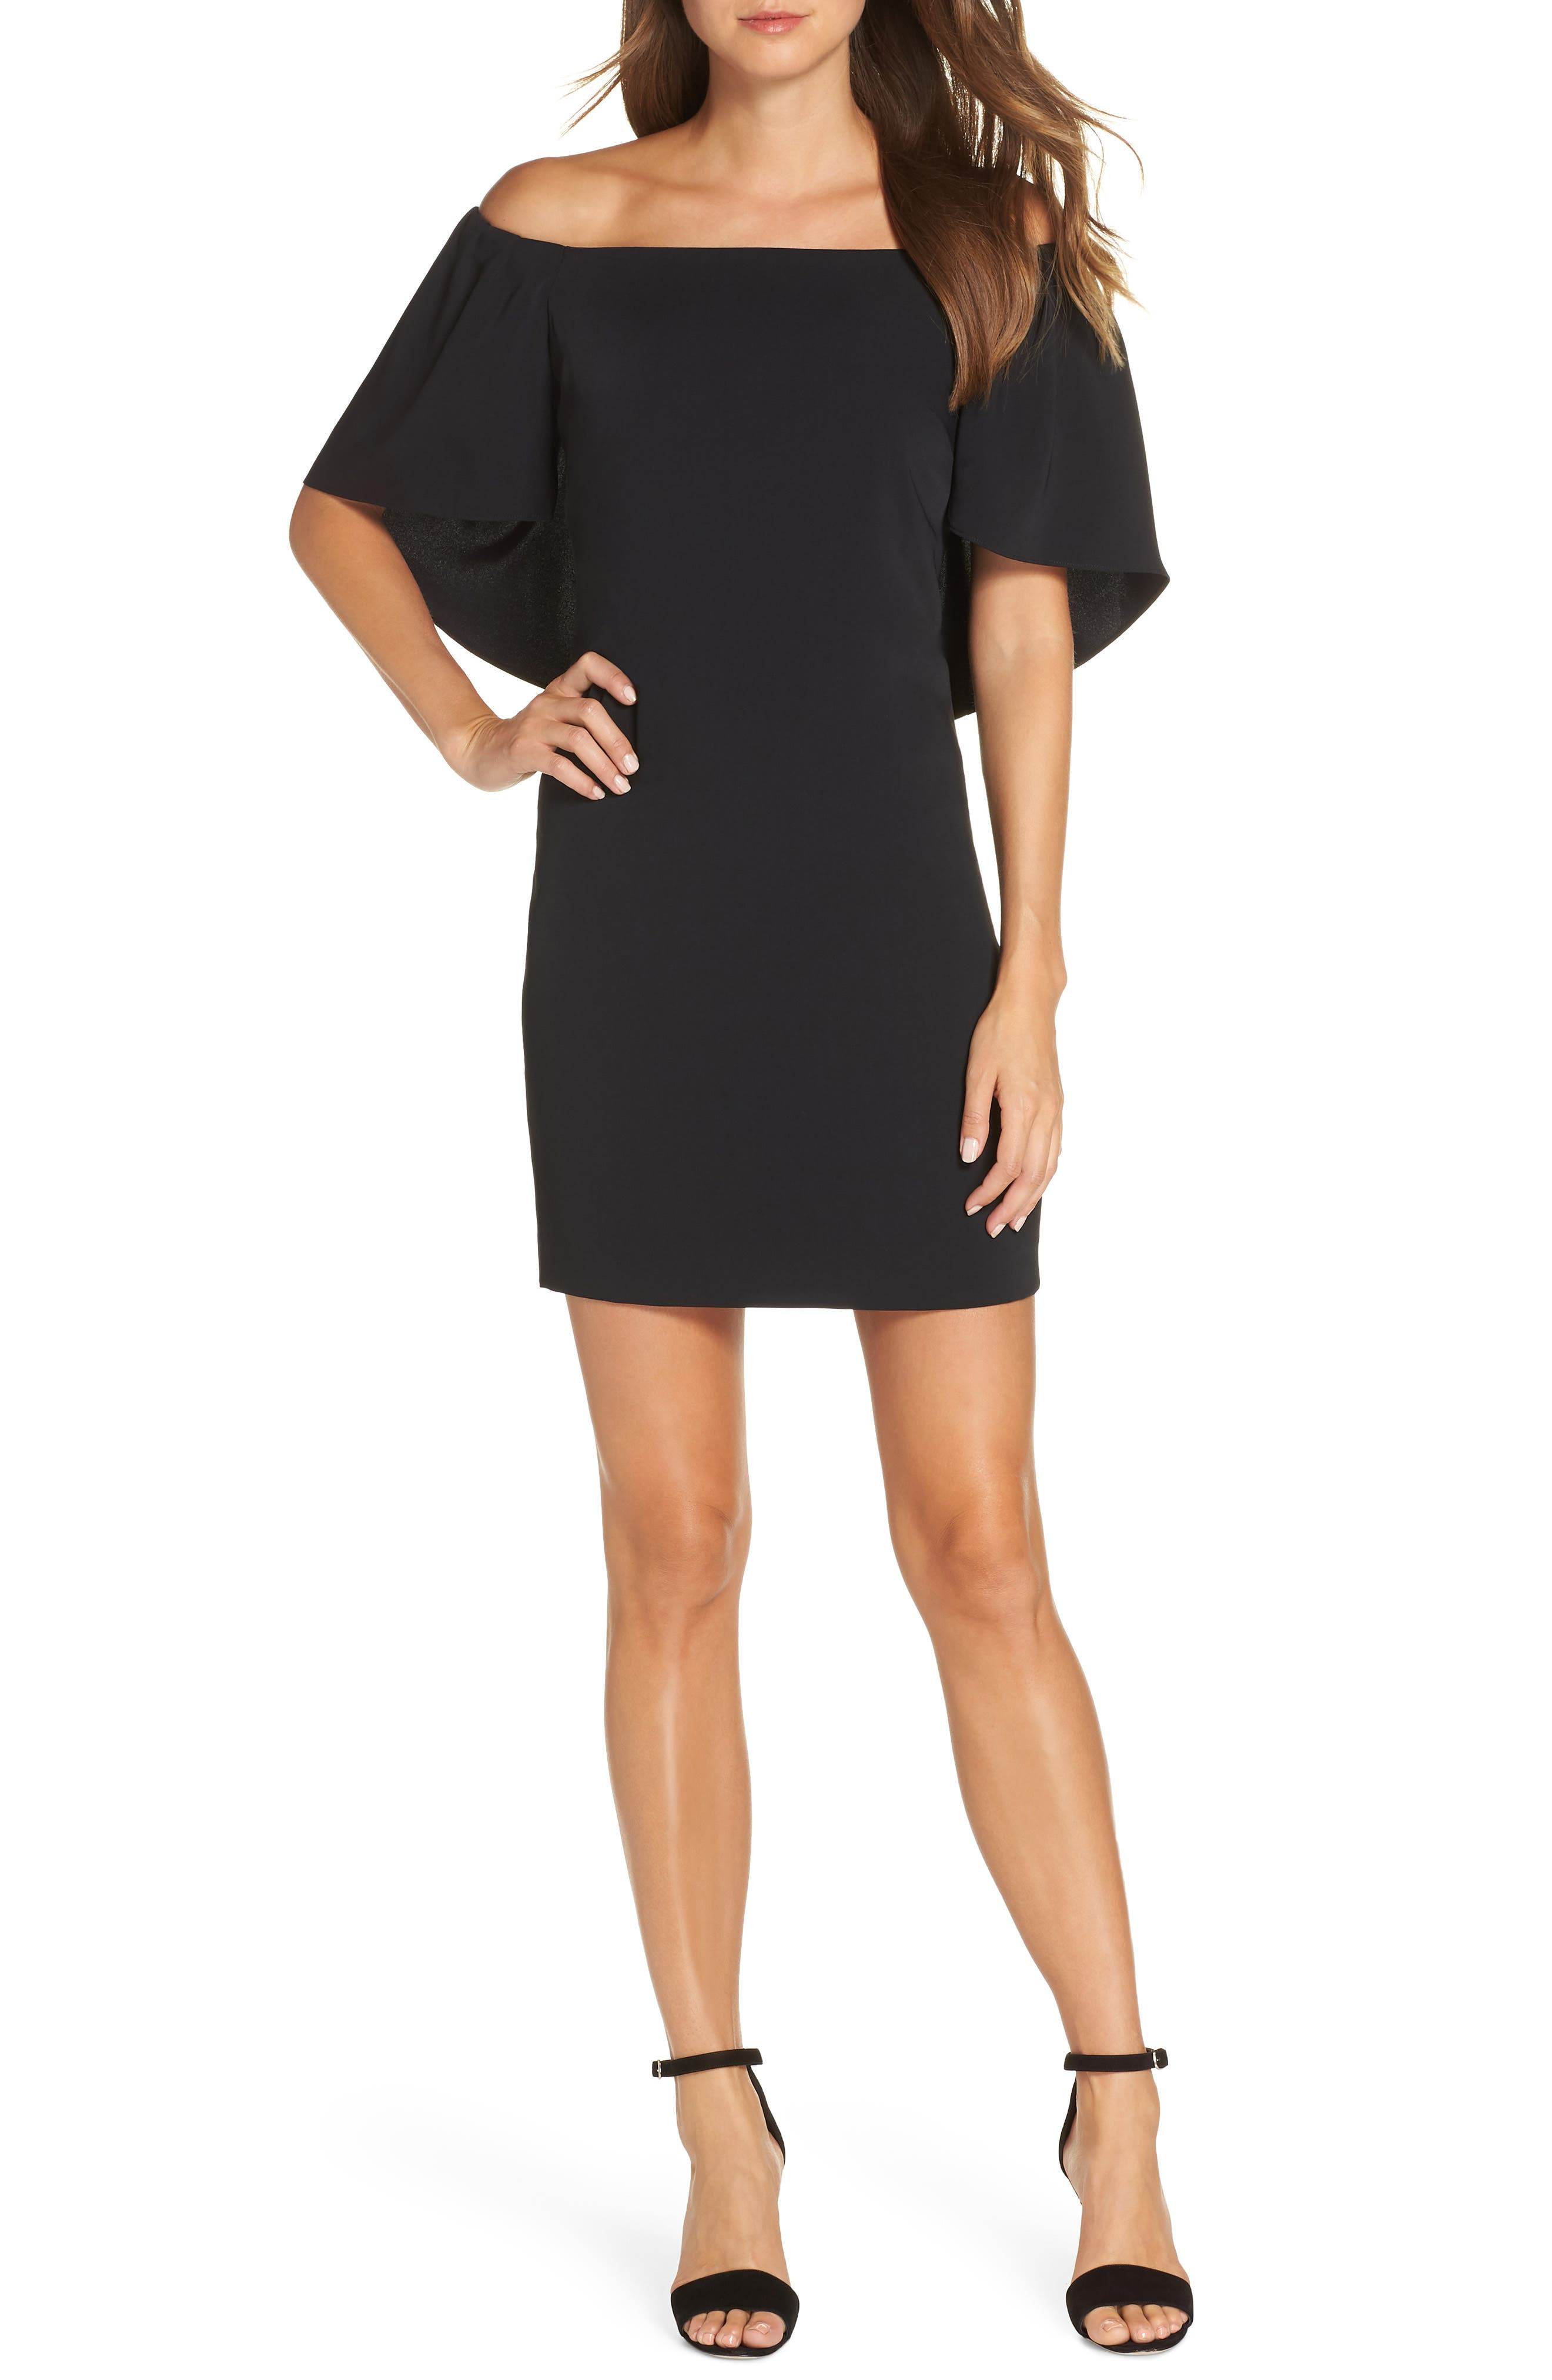 TRINA TRINA TURK,                             Zeal Off the Shoulder Dress,                             Main thumbnail 1, color,                             001